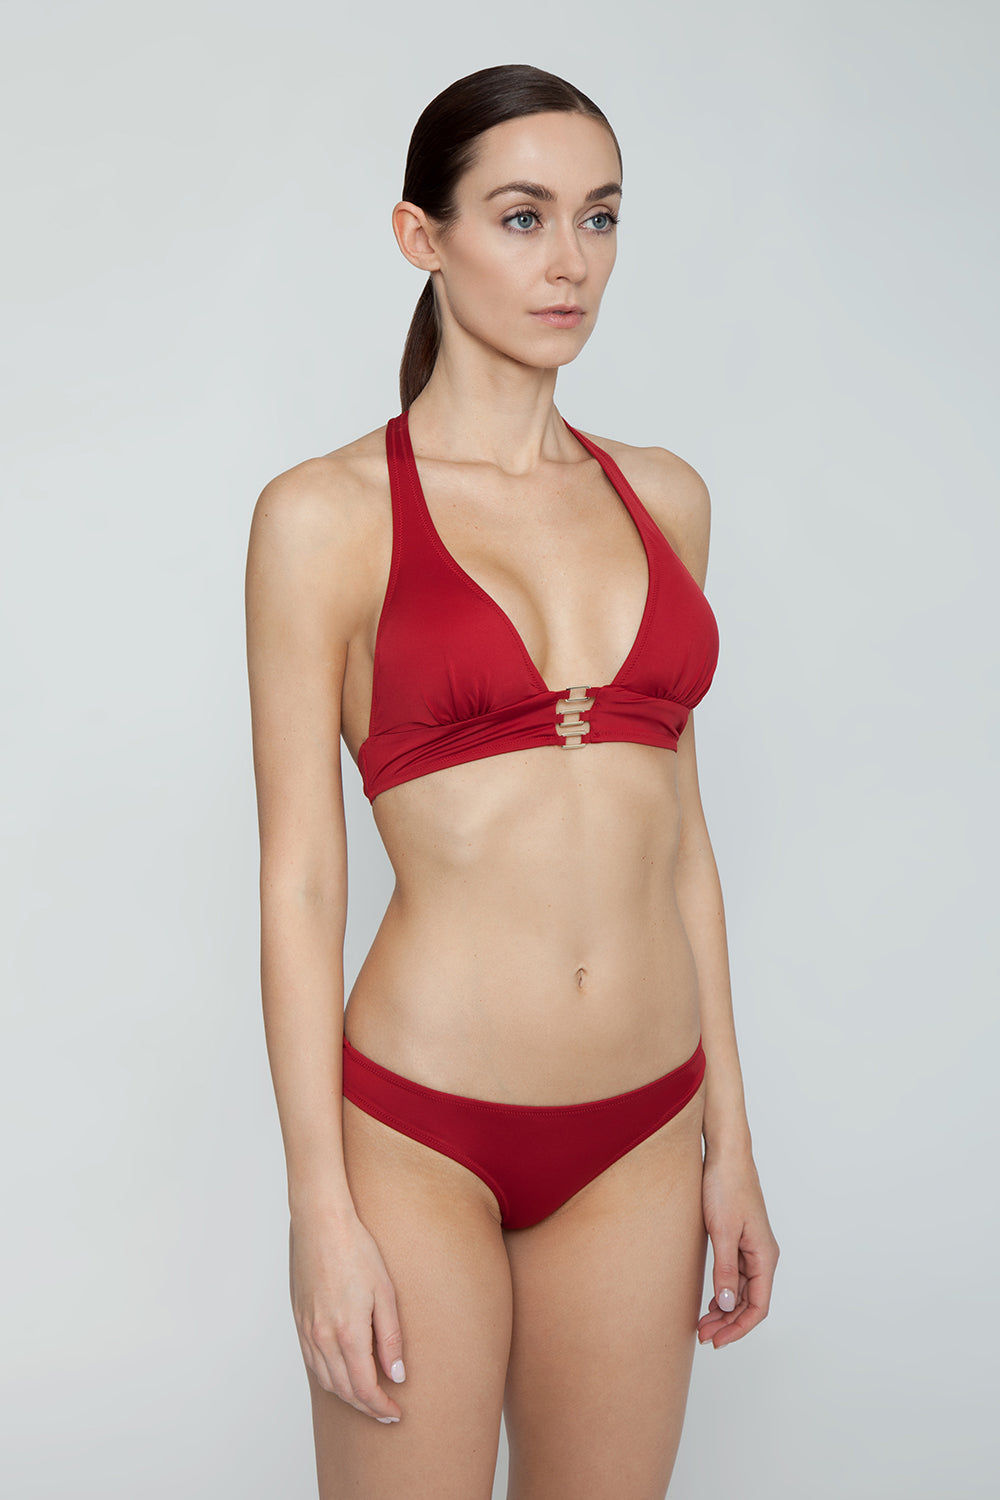 EVARAE Selene Rectangle Plunge Bikini Top - Red Shine Bikini Top | Red Shine| EVERAE Selene Rectangle Plunge Bikini Top - Red Shine Plunging neckline Rectangular hardware detail  Halter neck tie  Thick bra band Side View